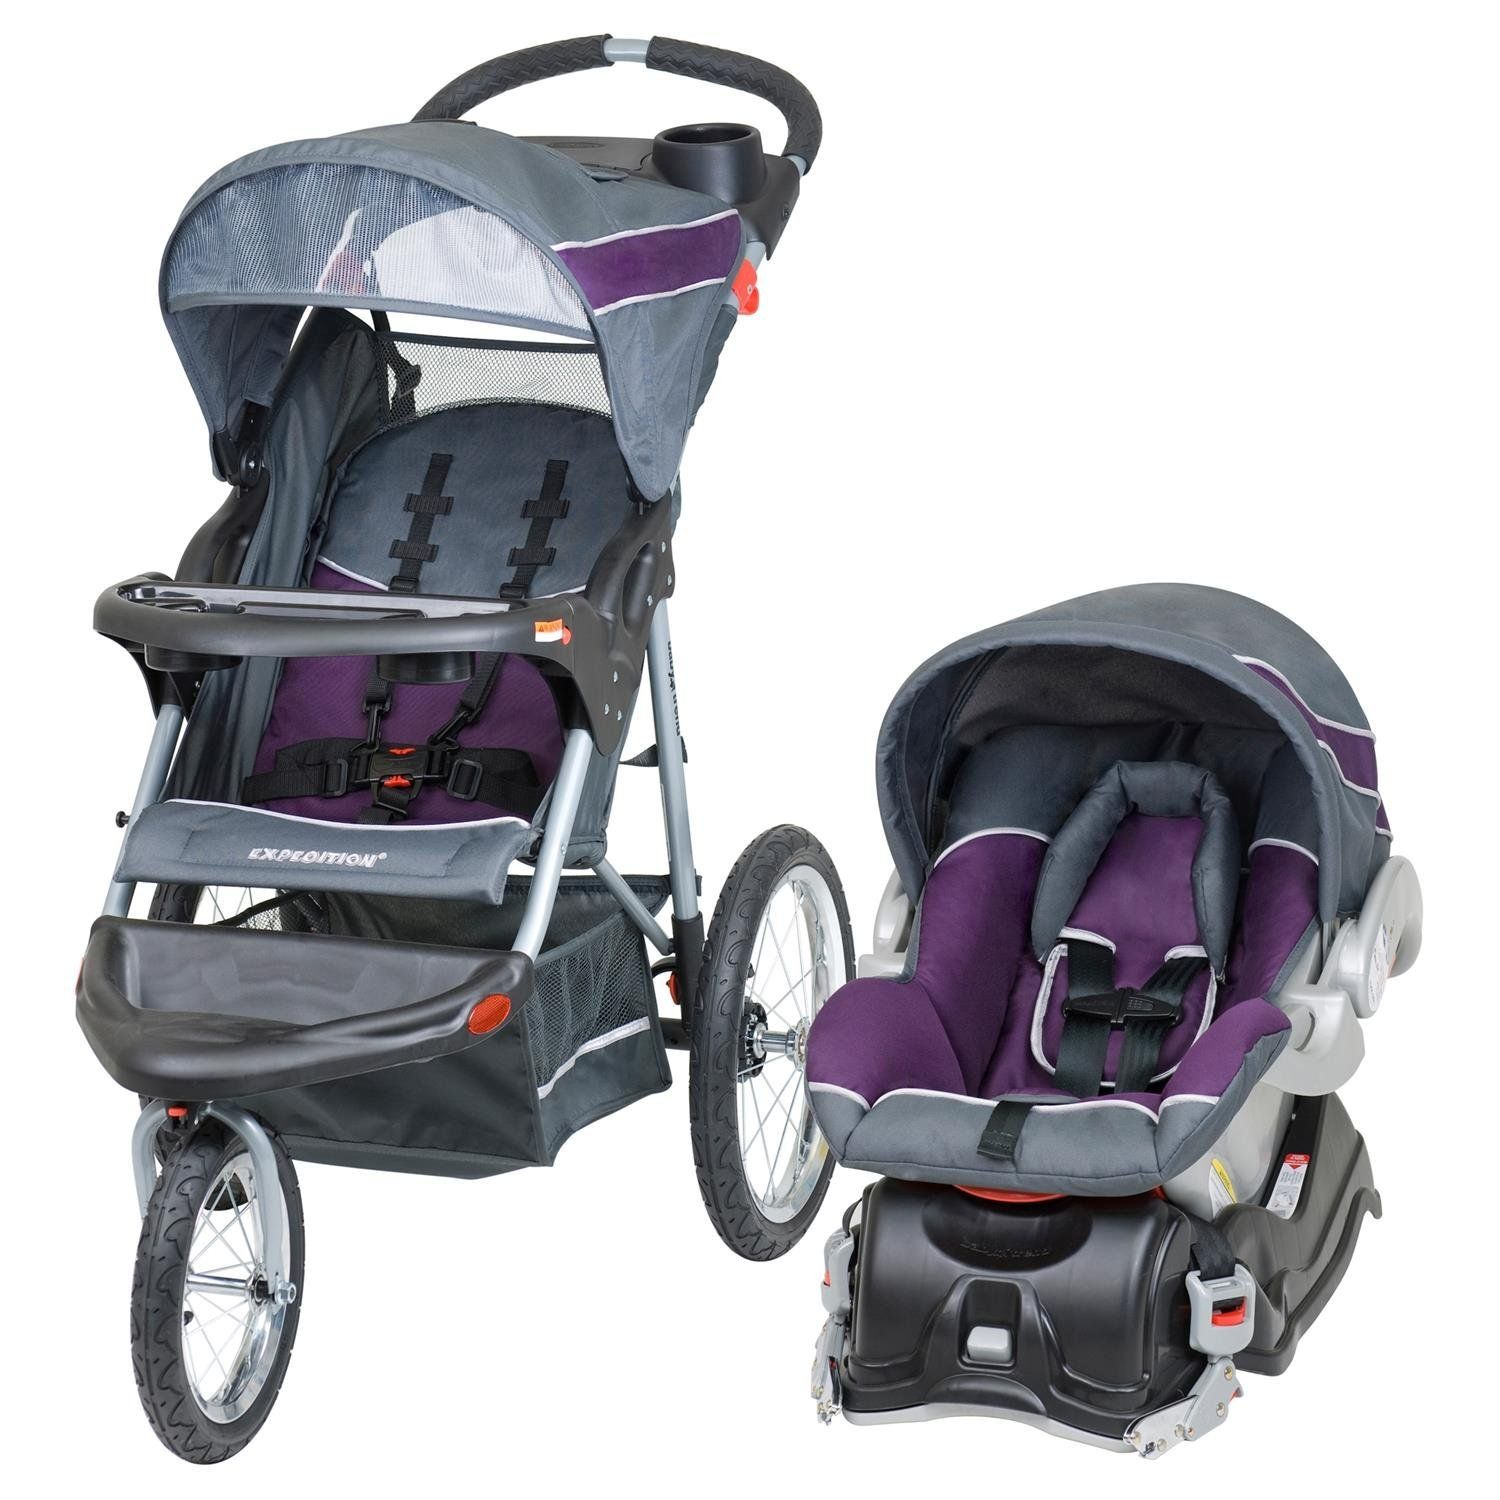 Amazon.com : Baby Trend Travel Jogger System, Elixer : Infant Car ...